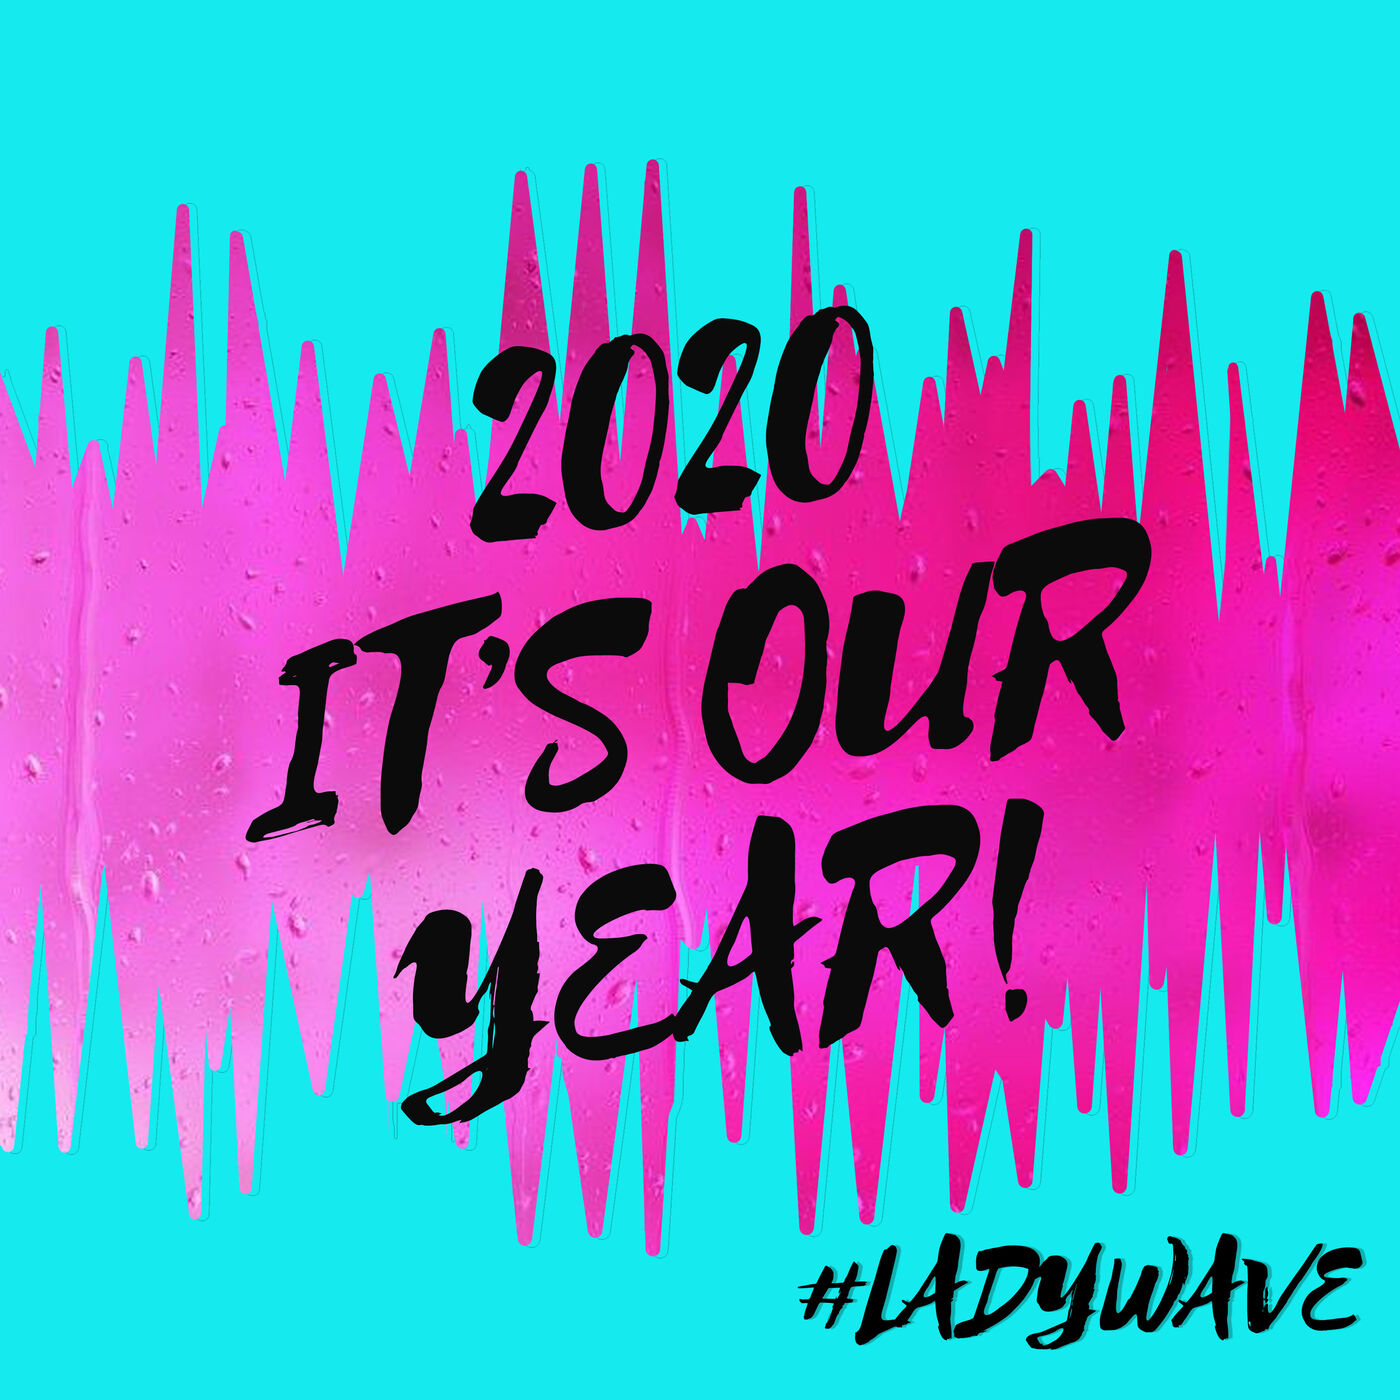 2020...It's Our Year!